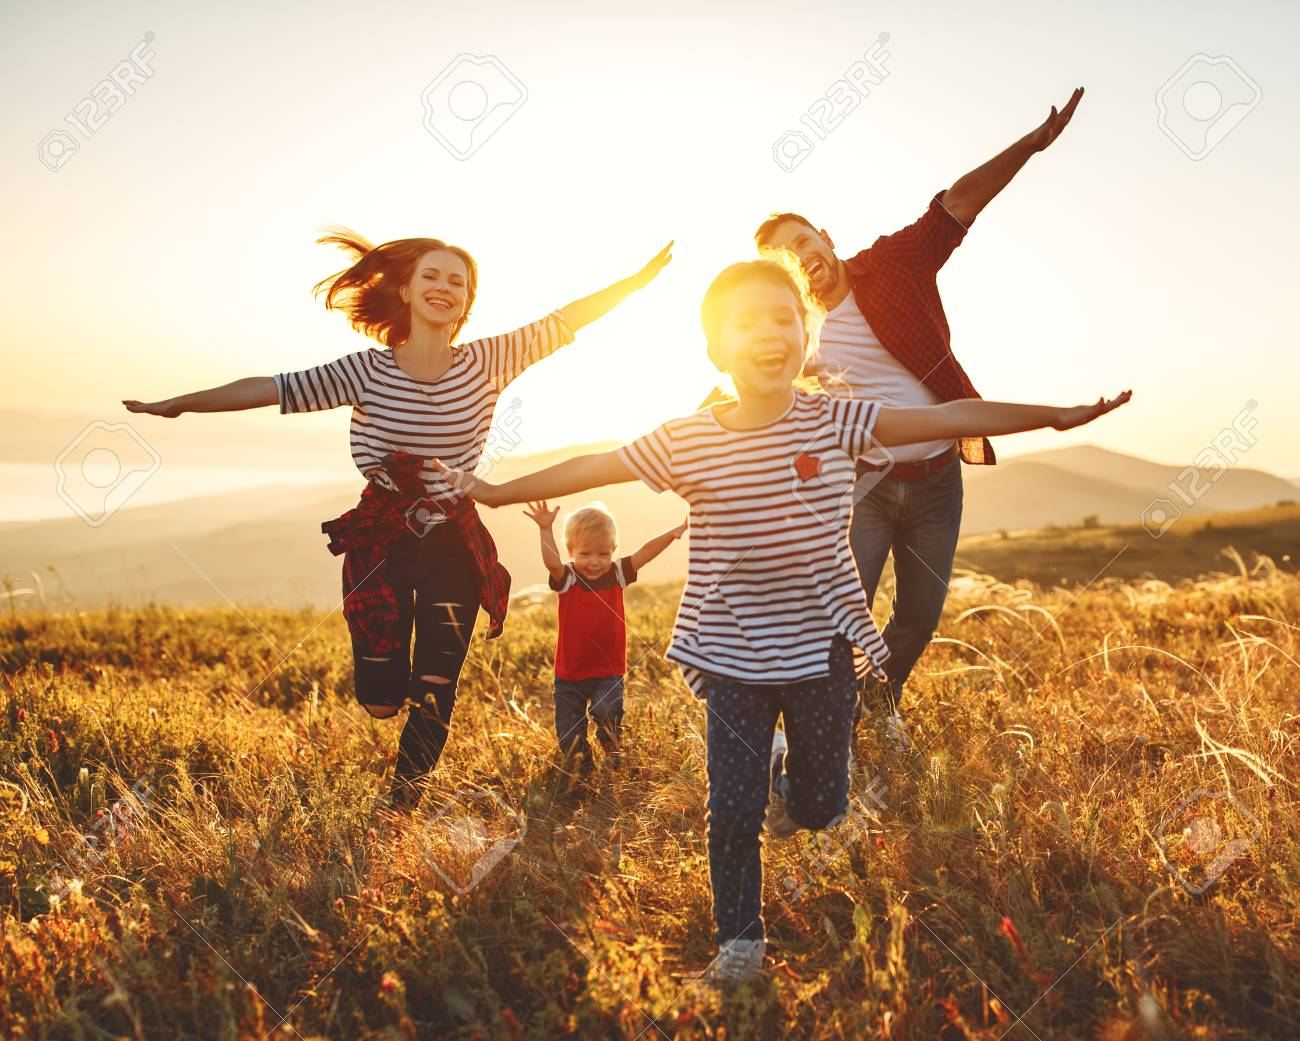 Happy family: Mother, father, children son and daughter on nature on sunset - 120402746